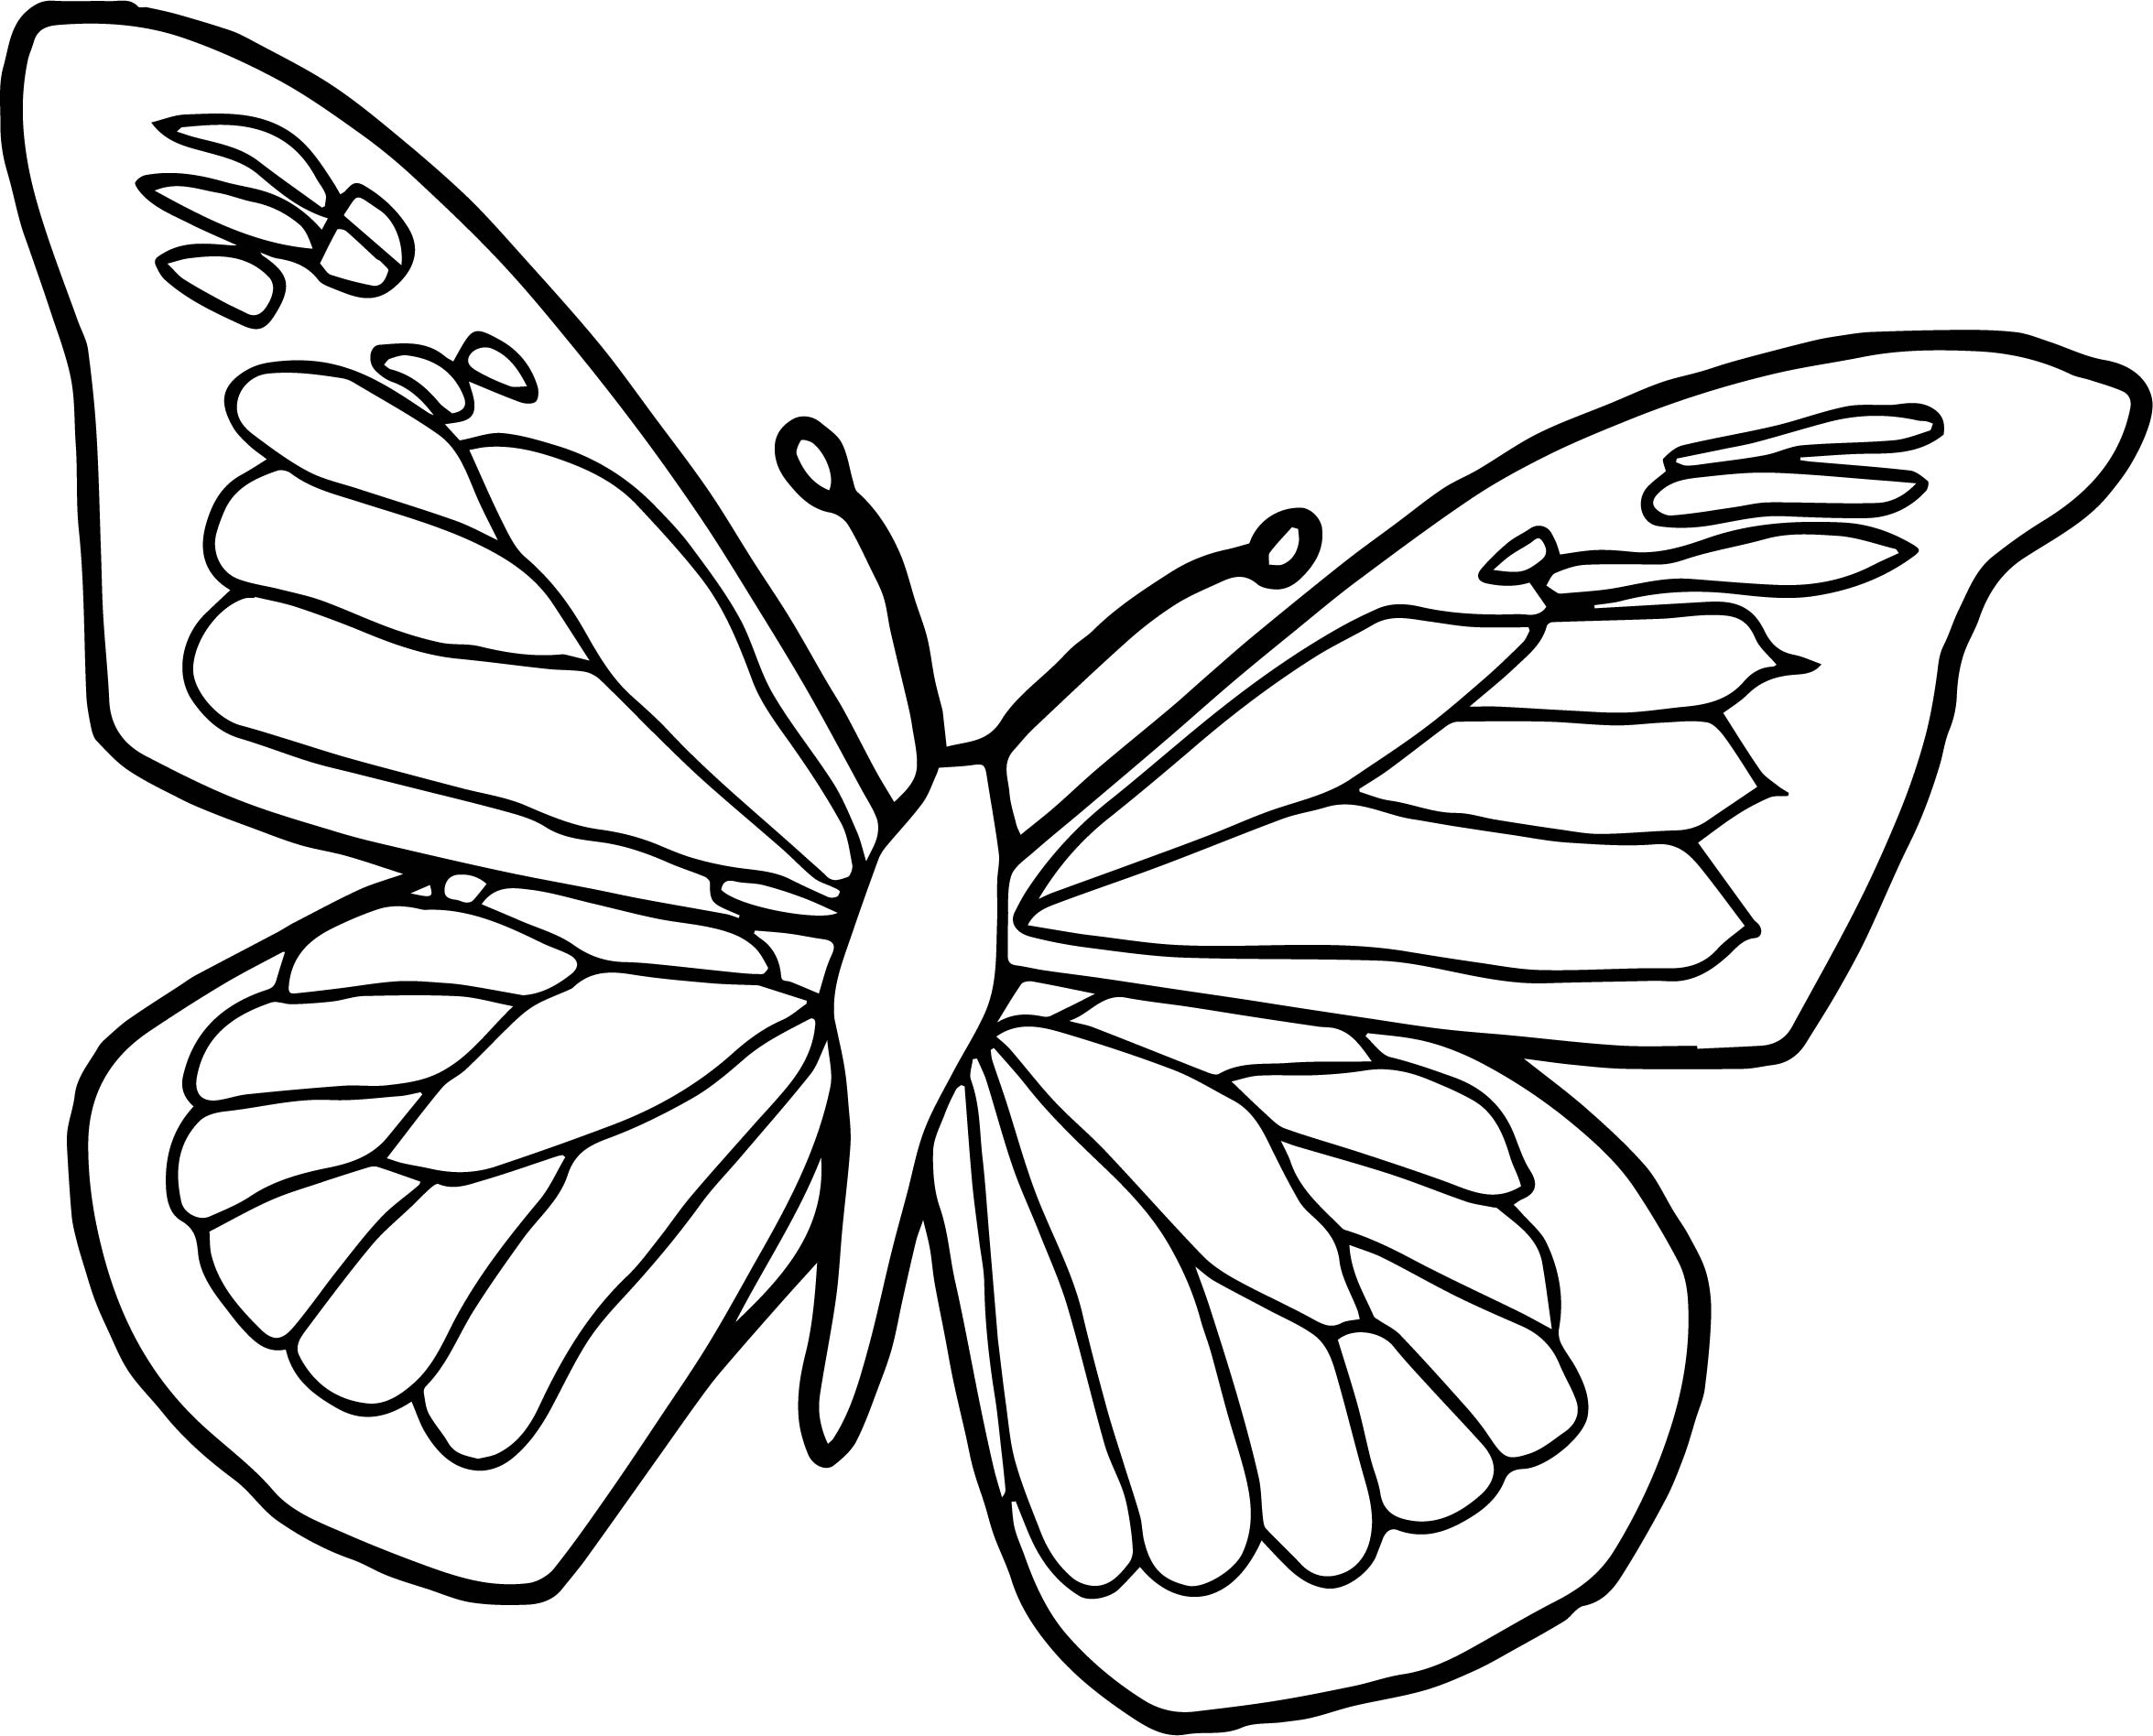 butterfly color sheet butterfly coloring pages free download on clipartmag butterfly sheet color 1 1